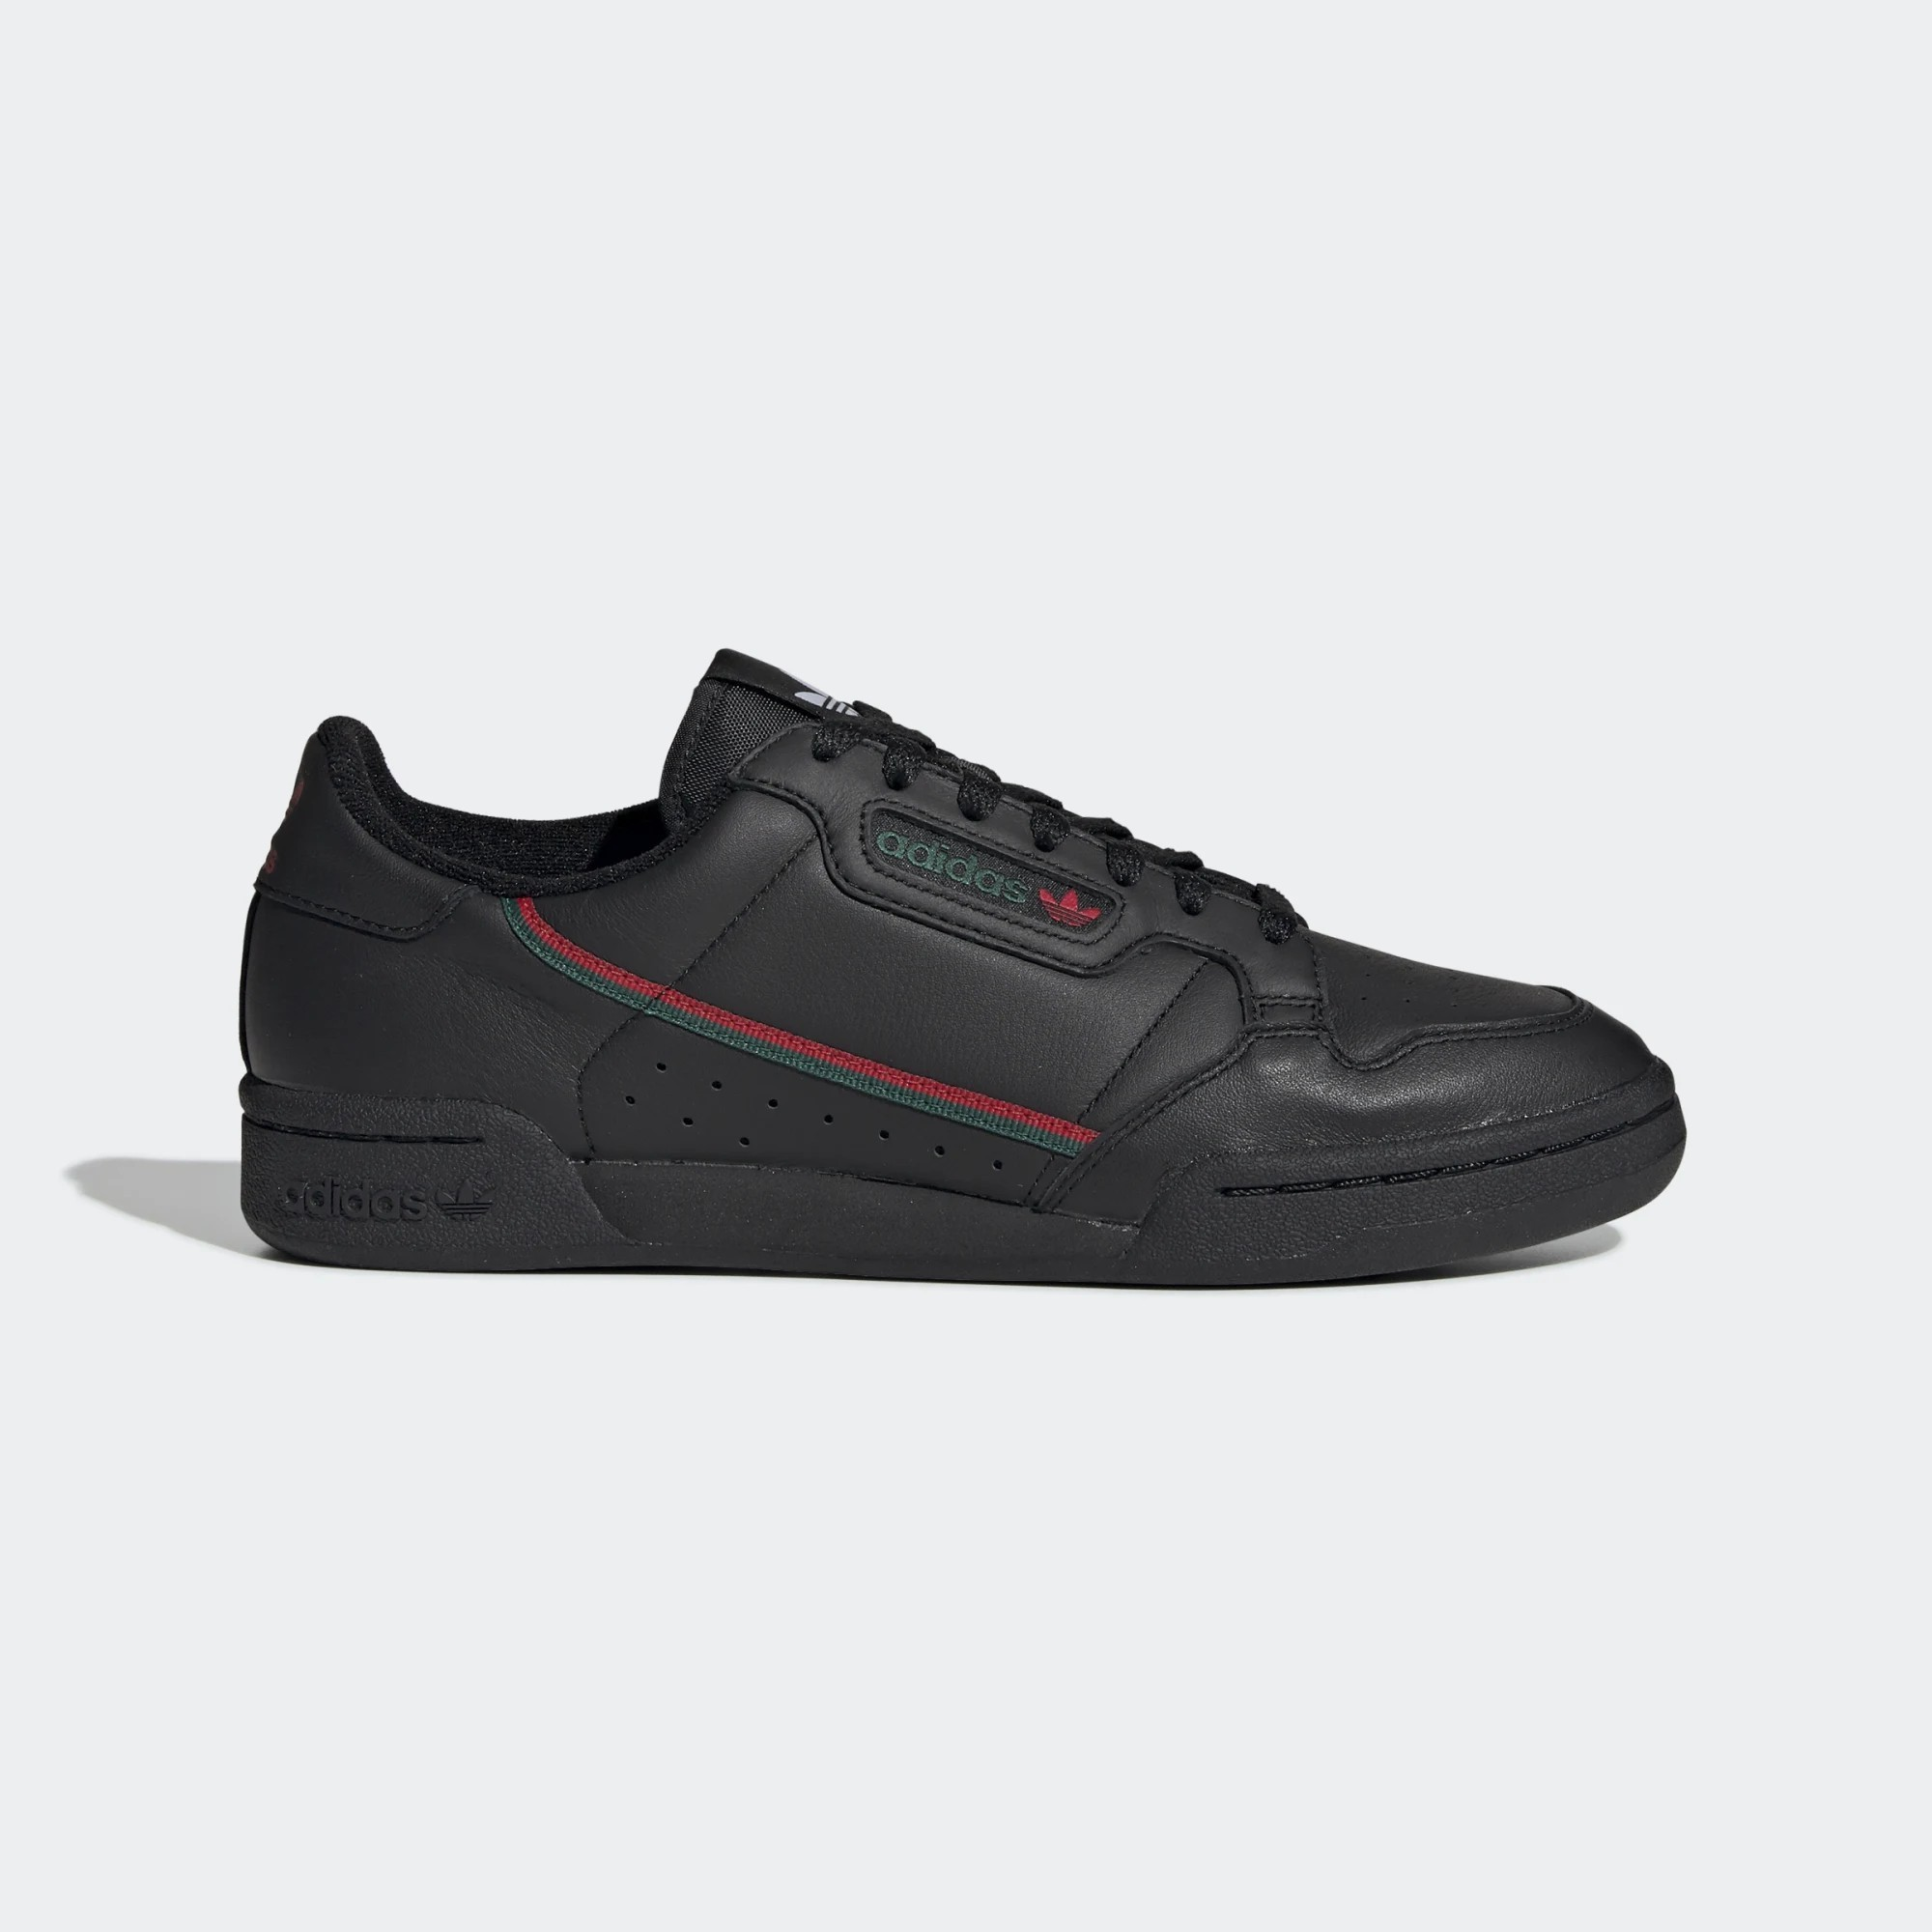 adidas Originals Continental 80 Black Sneakers EE5343